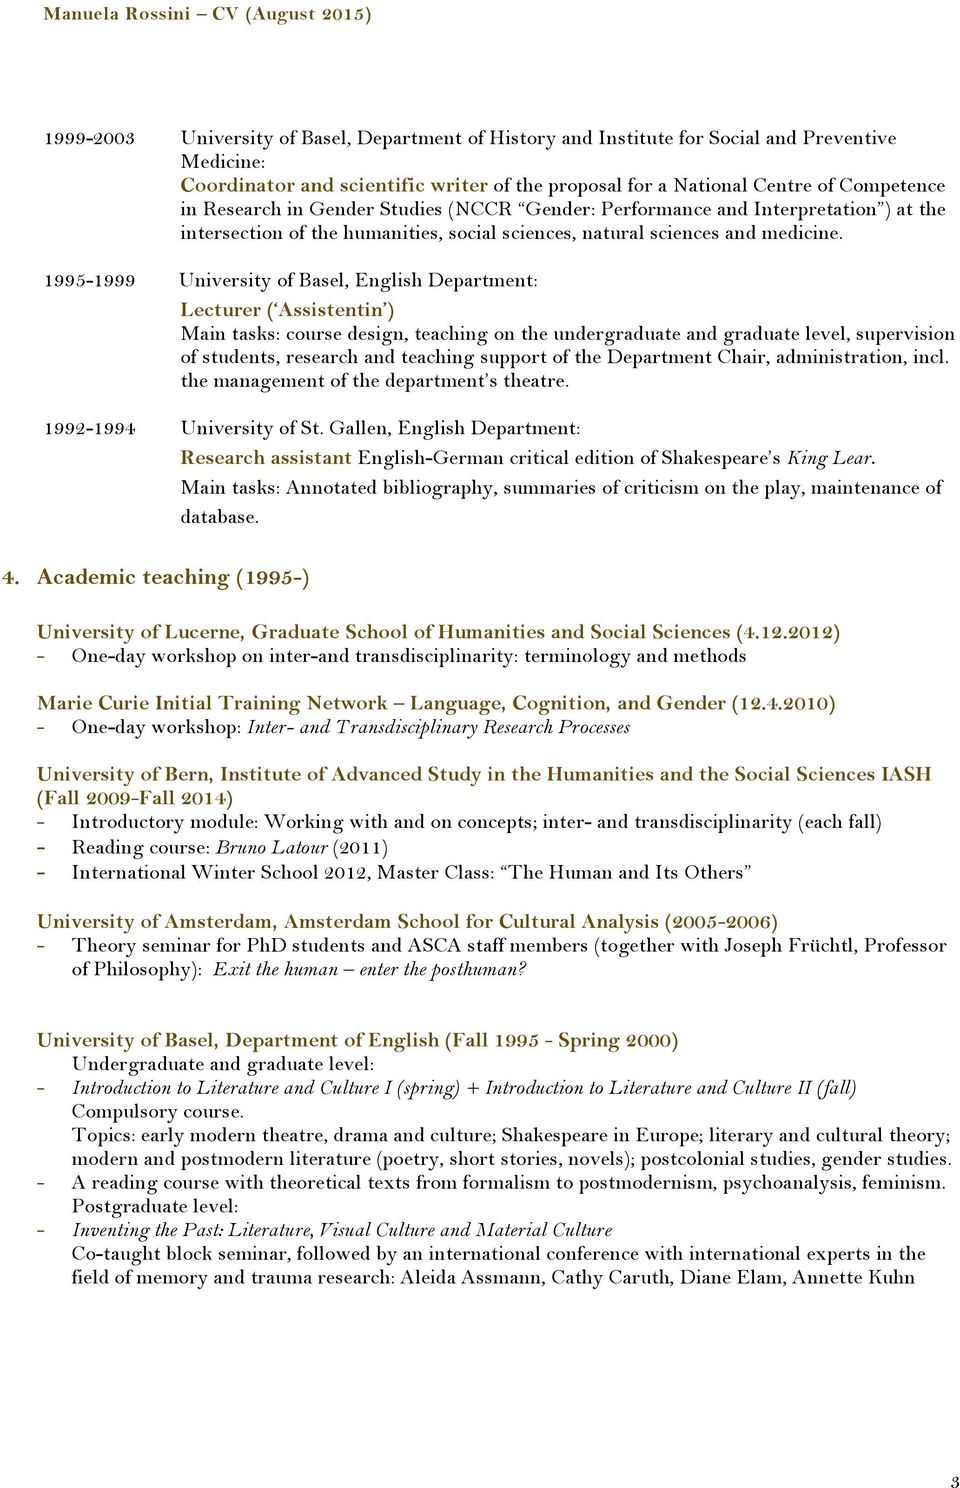 1995-1999 University of Basel, English Department: Lecturer ( Assistentin ) Main tasks: course design, teaching on the undergraduate and graduate level, supervision of students, research and teaching